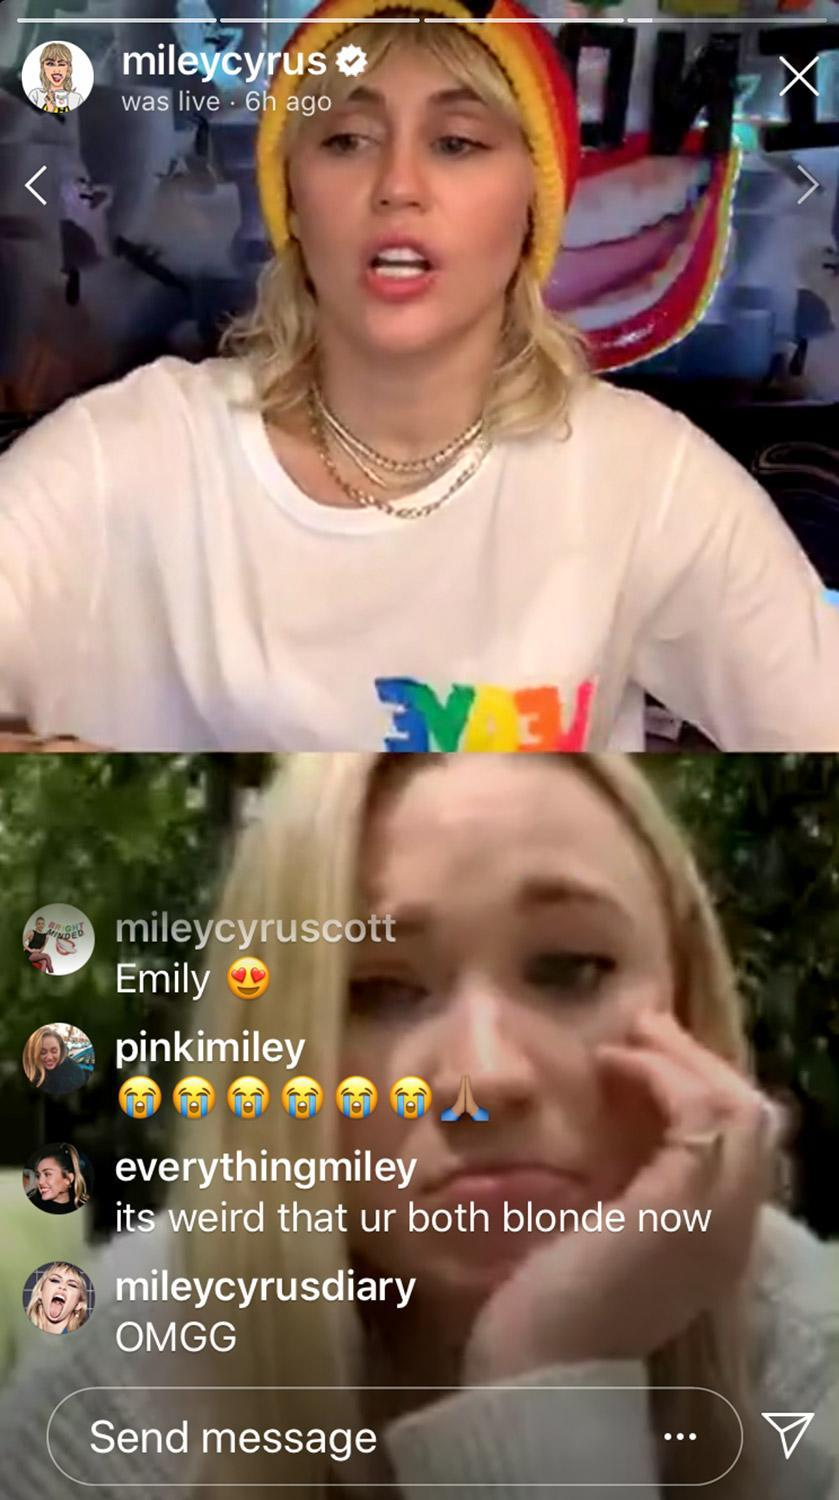 """<p>Miley Cyrus and Emily Osment woke up the <em>Hannah Montana</em> hive <a href=""""https://people.com/tv/miley-cyrus-has-hannah-montana-reunion-with-emily-osment-while-social-distancing/"""" rel=""""nofollow noopener"""" target=""""_blank"""" data-ylk=""""slk:when they got together"""" class=""""link rapid-noclick-resp"""">when they got together</a> on an episode of Cyrus' daily Instagram Live talk show, <em>Bright Minded: Live with Miley</em>.</p> <p>Cyrus called the virtual meet-up """"the reunion of the decade"""" as they talked about embarrassing photos and long days on set.</p> <p>After reminiscing over good times, Cyrus went on to explain that she wanted Osment to be a part of her talk show because she knows the star is an animal lover and together they could <a href=""""https://people.com/pets/celebrities-fostering-adopting-pets-during-coronavirus/"""" rel=""""nofollow noopener"""" target=""""_blank"""" data-ylk=""""slk:encourage people to help foster pets"""" class=""""link rapid-noclick-resp"""">encourage people to help foster pets</a> during the <a href=""""https://people.com/tag/coronavirus/"""" rel=""""nofollow noopener"""" target=""""_blank"""" data-ylk=""""slk:coronavirus outbreak"""" class=""""link rapid-noclick-resp"""">coronavirus outbreak</a>.</p> <p>""""It's a really great time for those in situations that are able to provide. It's a good time to adopt or foster — but it's really important to talk about financial responsibility and the strain a pet can cause on a family during this financially challenging time,"""" she said. """"The best way to draw attention to man's best friend is to bring in the best friend duo that always encouraged people to do what's best and do what's right.""""</p> <p>Cyrus ended the livestream by thanking Osment for coming onto her show.</p> <p>""""I just wanted to say thank you so much,"""" she said. """"Your music is badass, thank you for what you do with animals, thanks for bringing up the idea to make sure we highlight animal care at this time, and you are the best.""""</p>"""